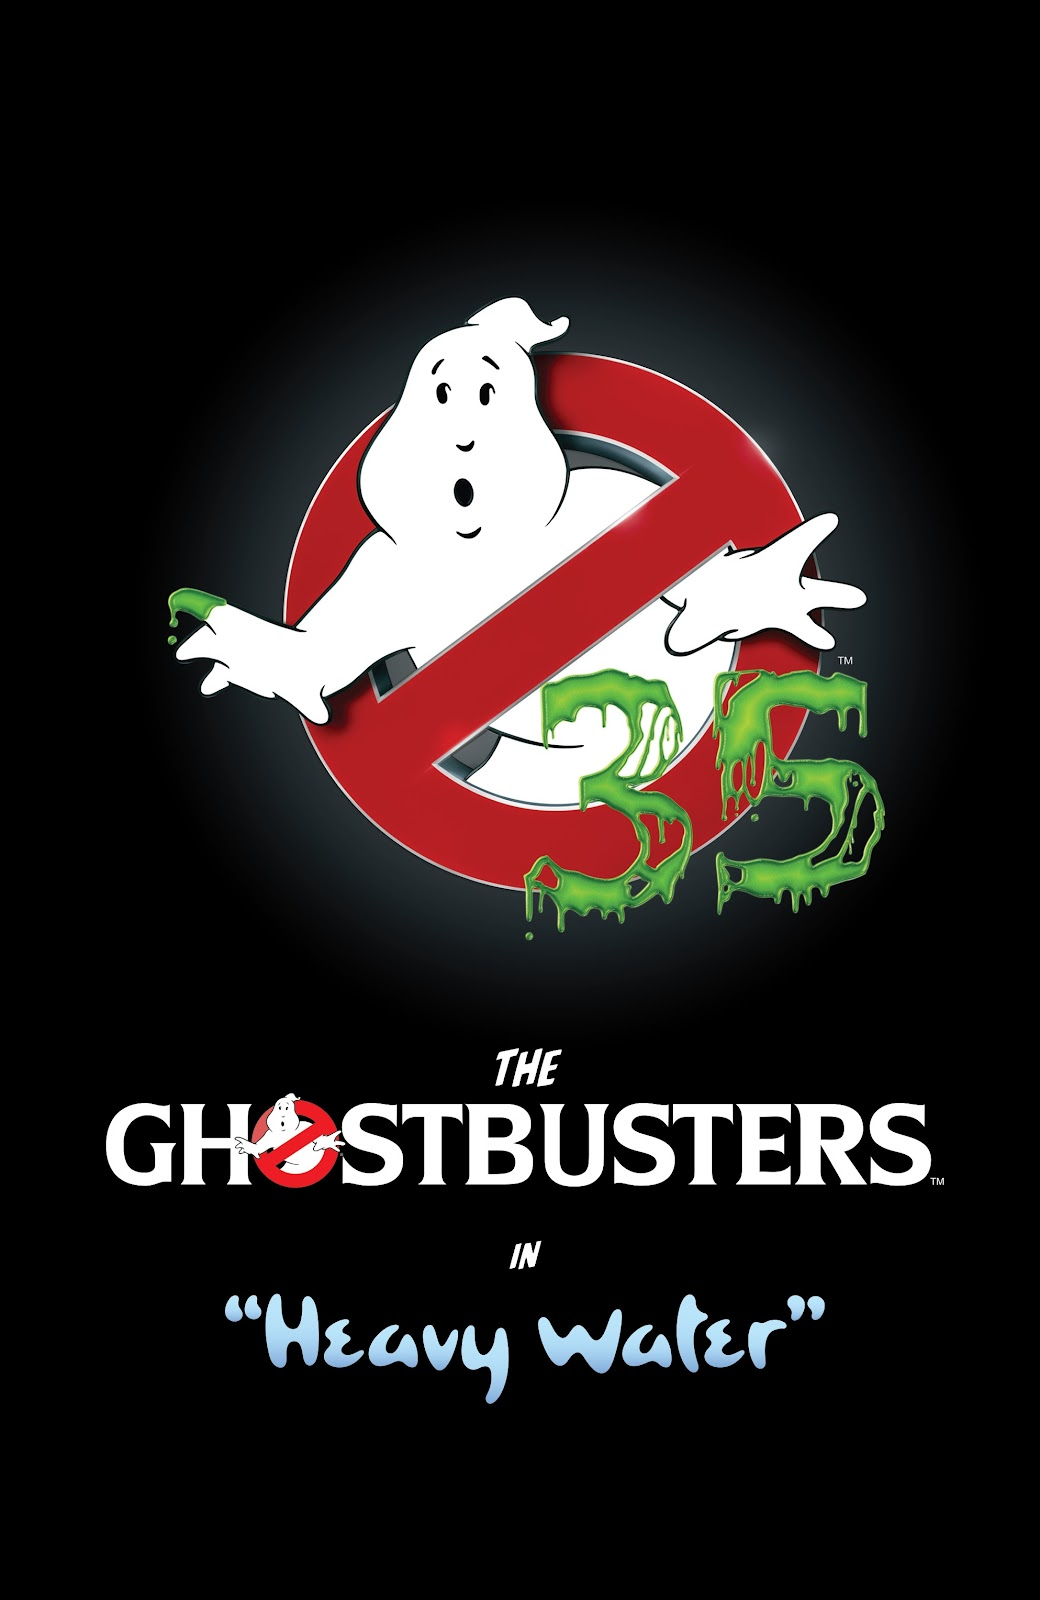 Read online Ghostbusters 35th Anniversary: Ghostbusters comic -  Issue # Full - 3